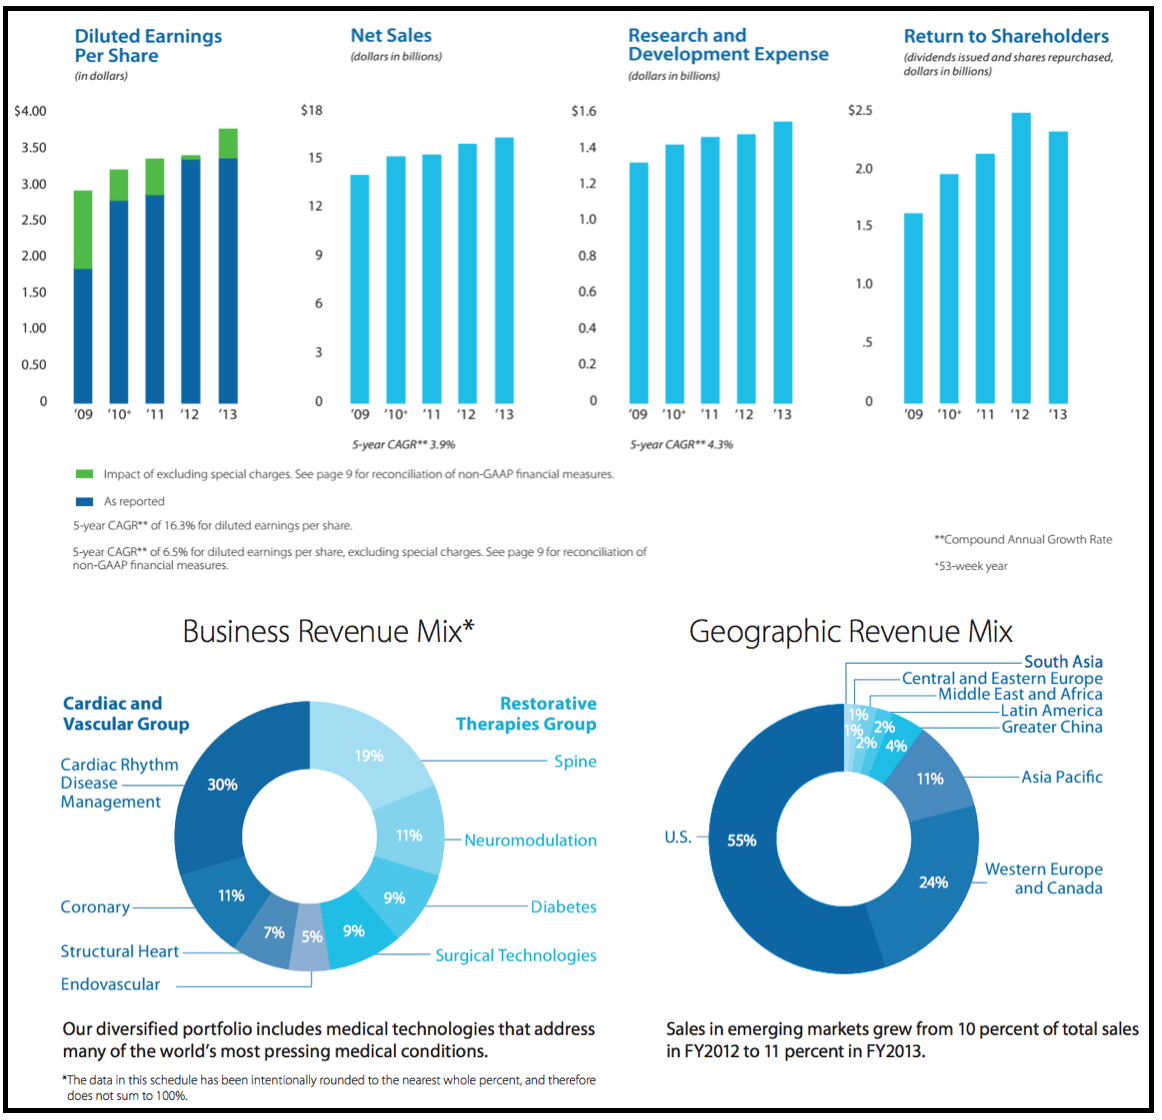 Medtronic 2012 financial highlights